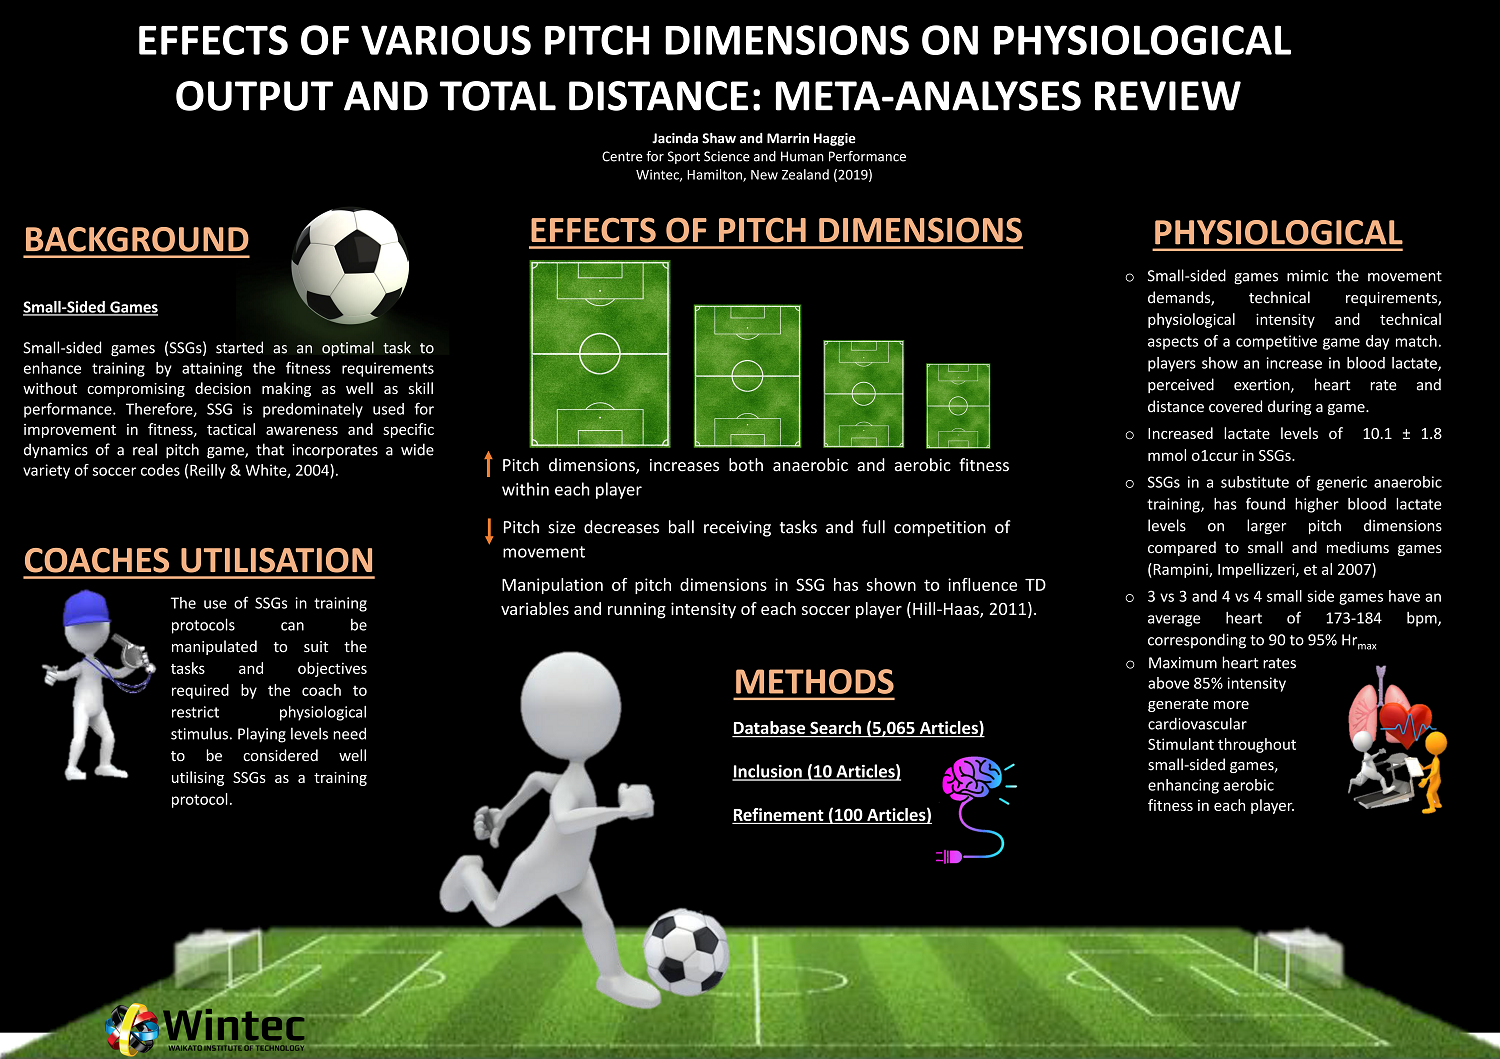 Effects of Various Pitch Dimensions on Physiological Output and Total Distance: Meta-analyses Review